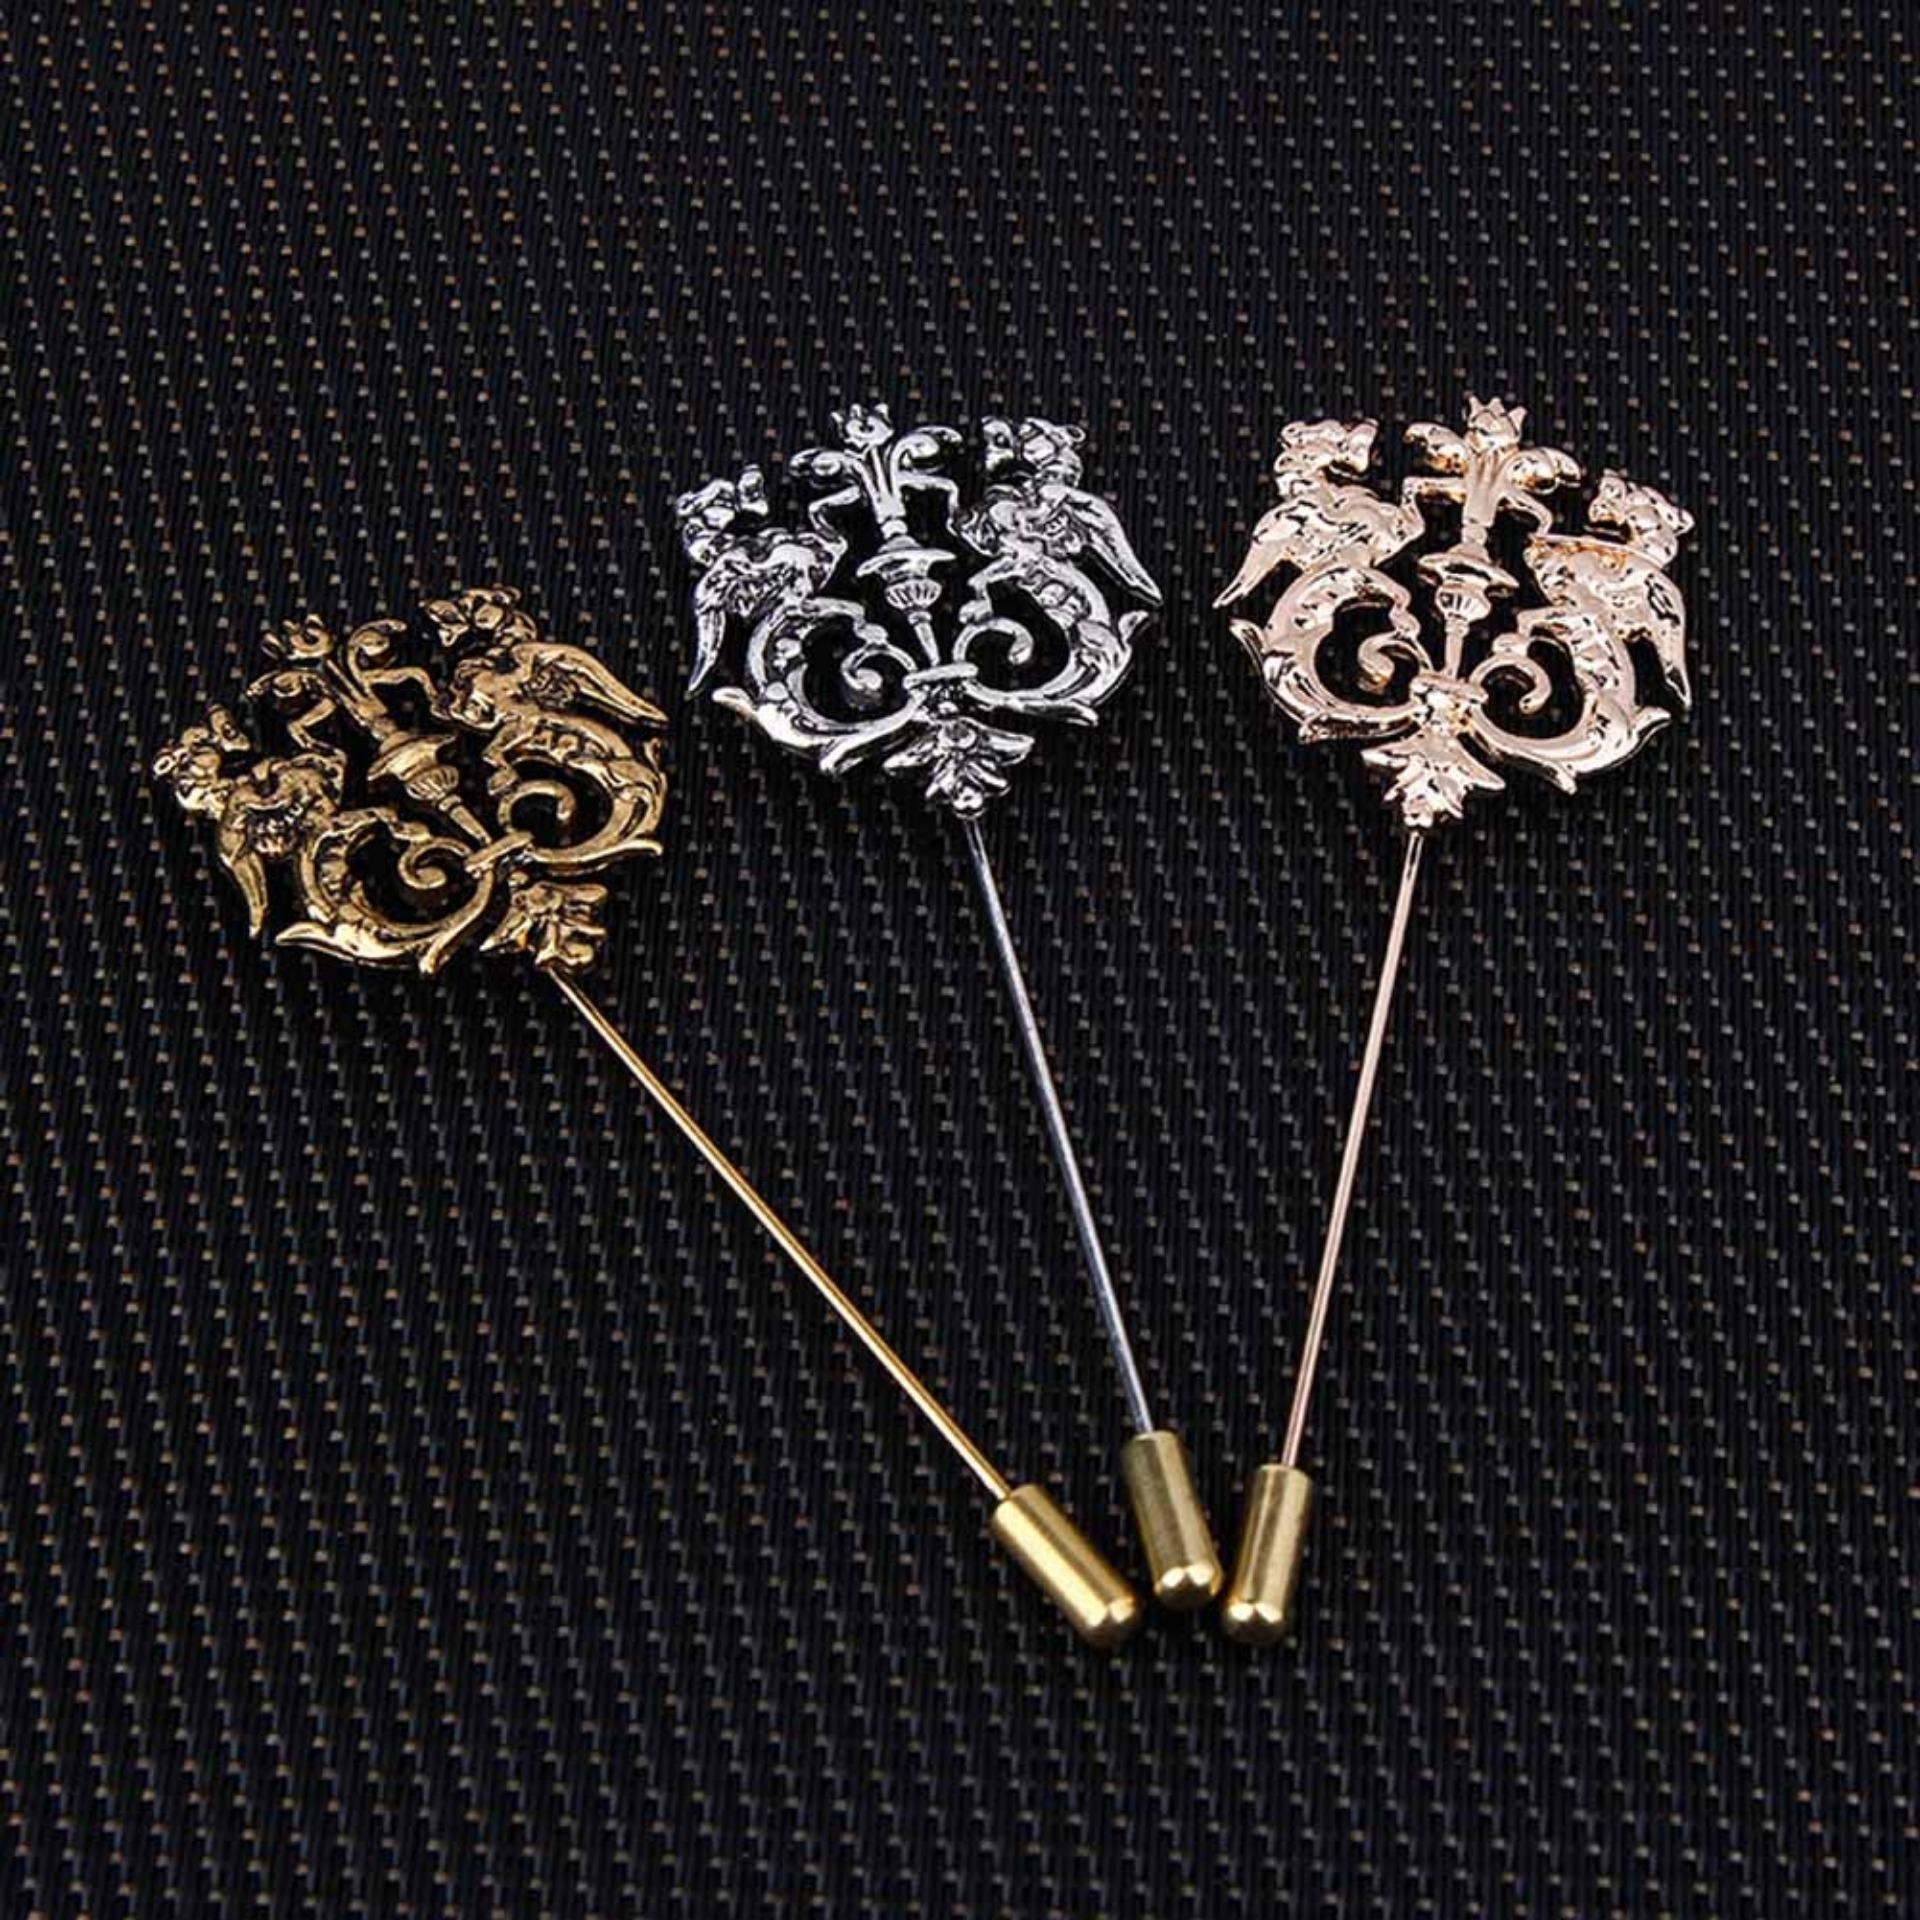 suits rose fashion for brooch s brooches jewelry silk pins mens flower accessories vintage royal blue lapel wedding women luxury pin men red suit